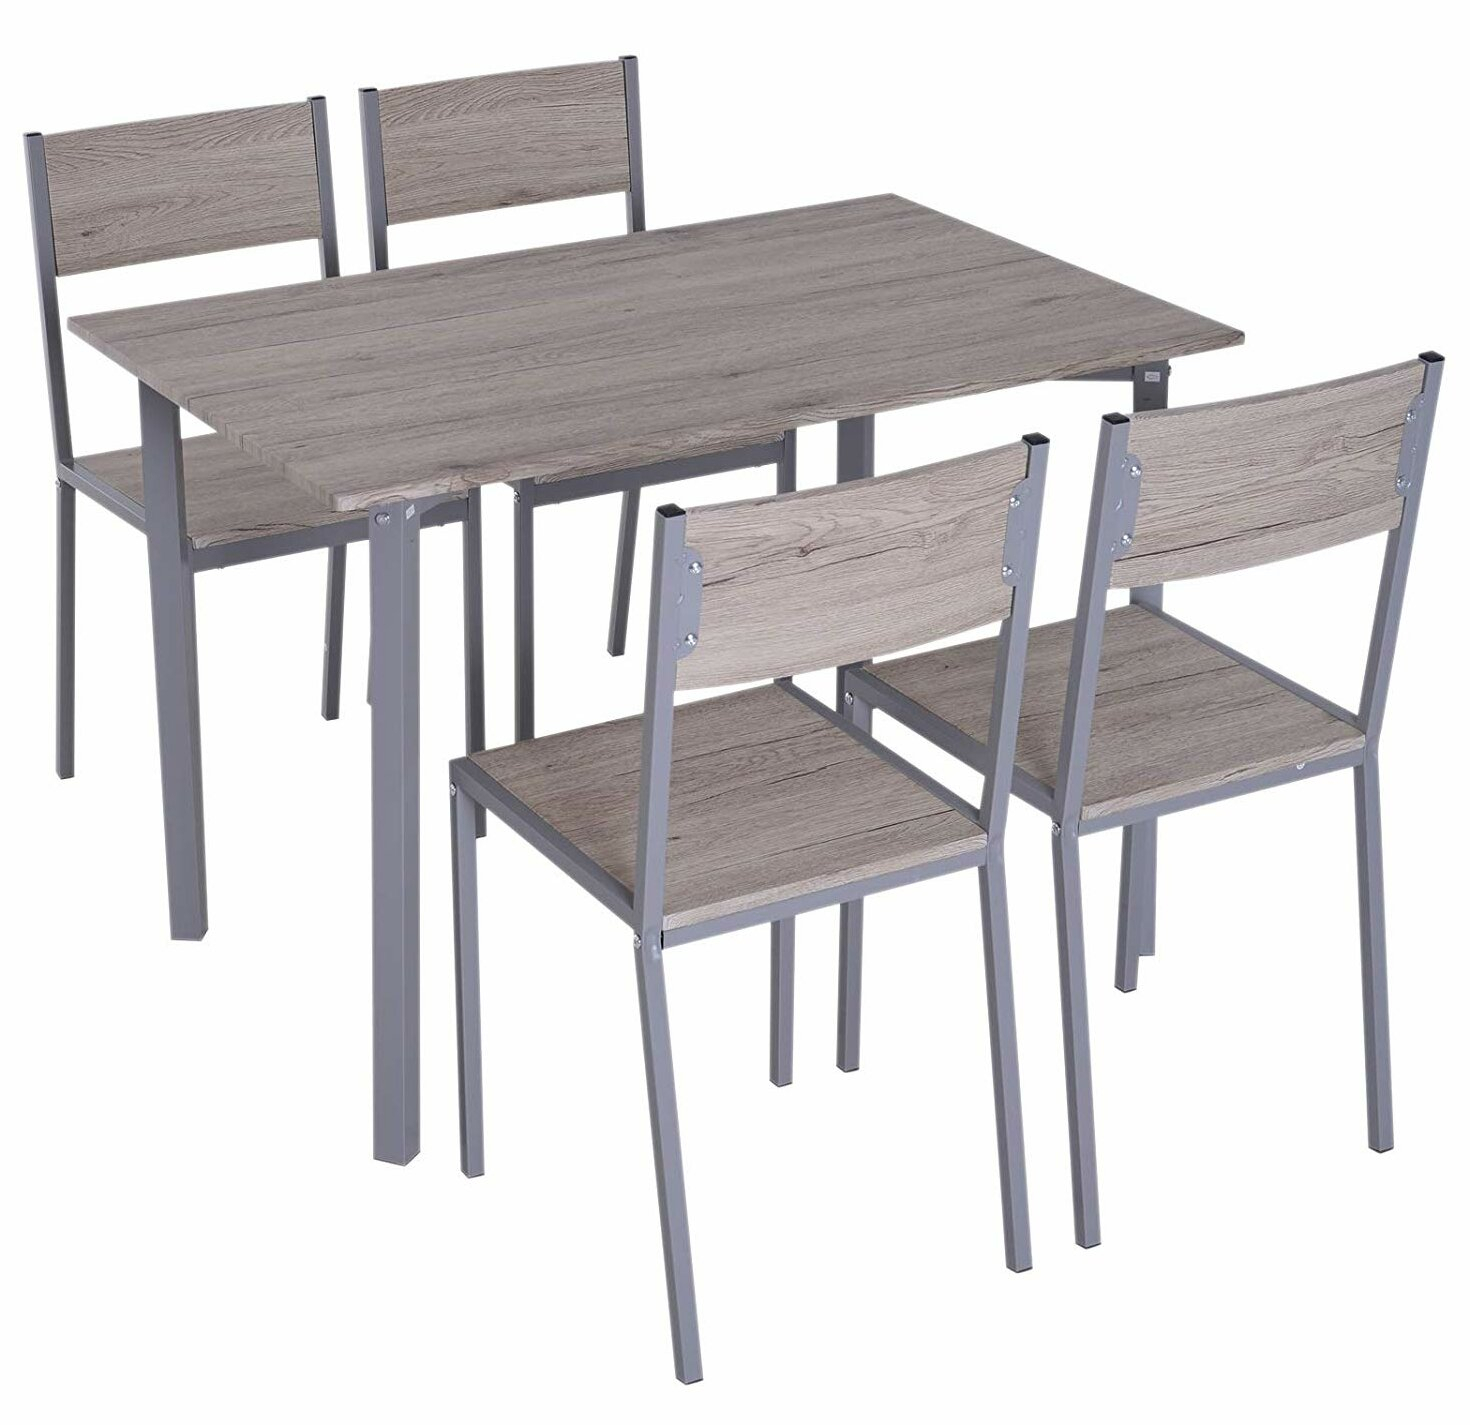 Legros Modern Compact 5 Piece Dining Set Within Most Up To Date Telauges 5 Piece Dining Sets (View 10 of 20)